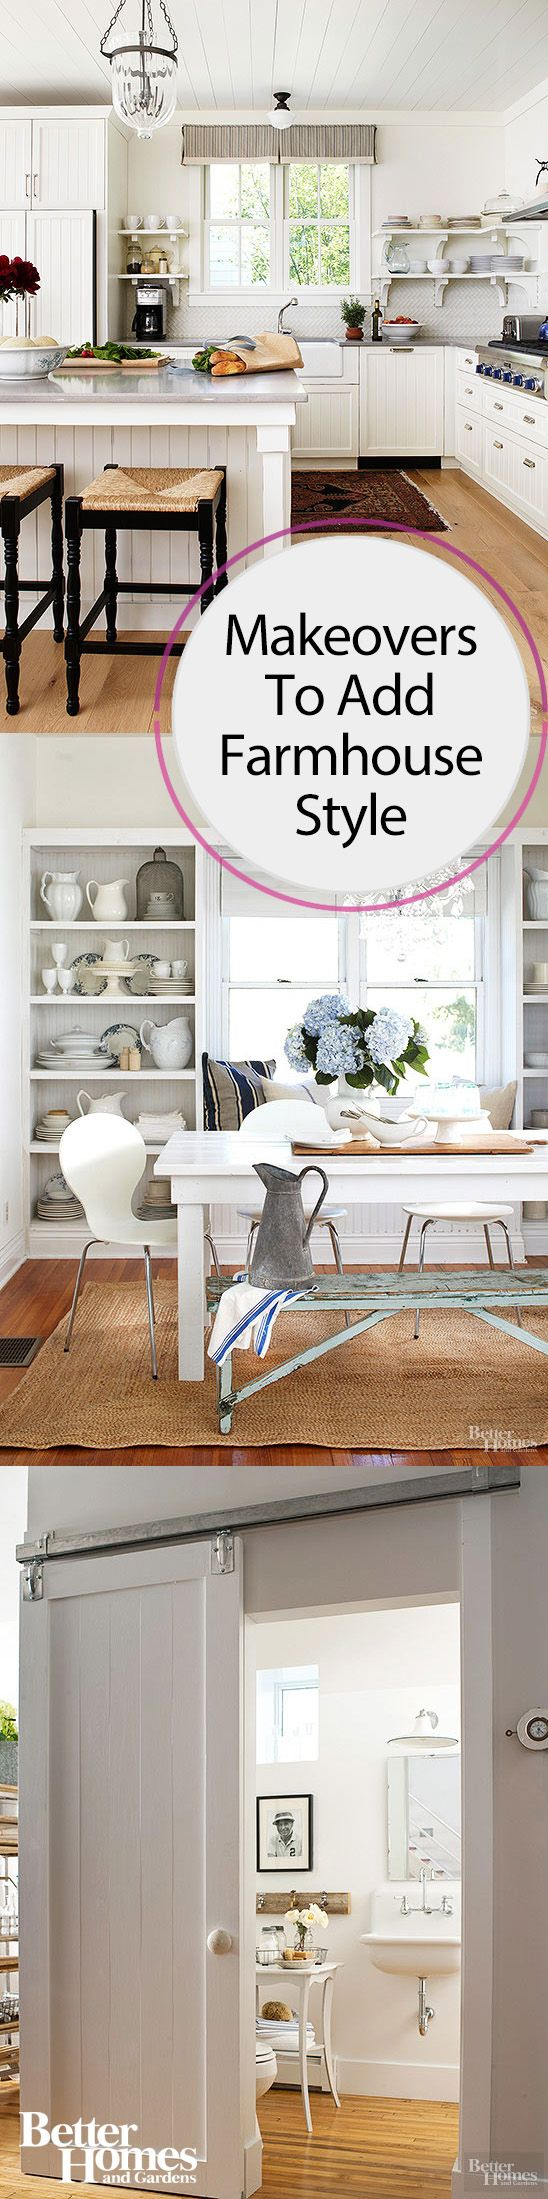 Decorating your house to fit the farmhouse style is simple when you follow these creative tips. This roundup features kitchen, living room, and bedroom ideas for nailing this cozy decorating trend.